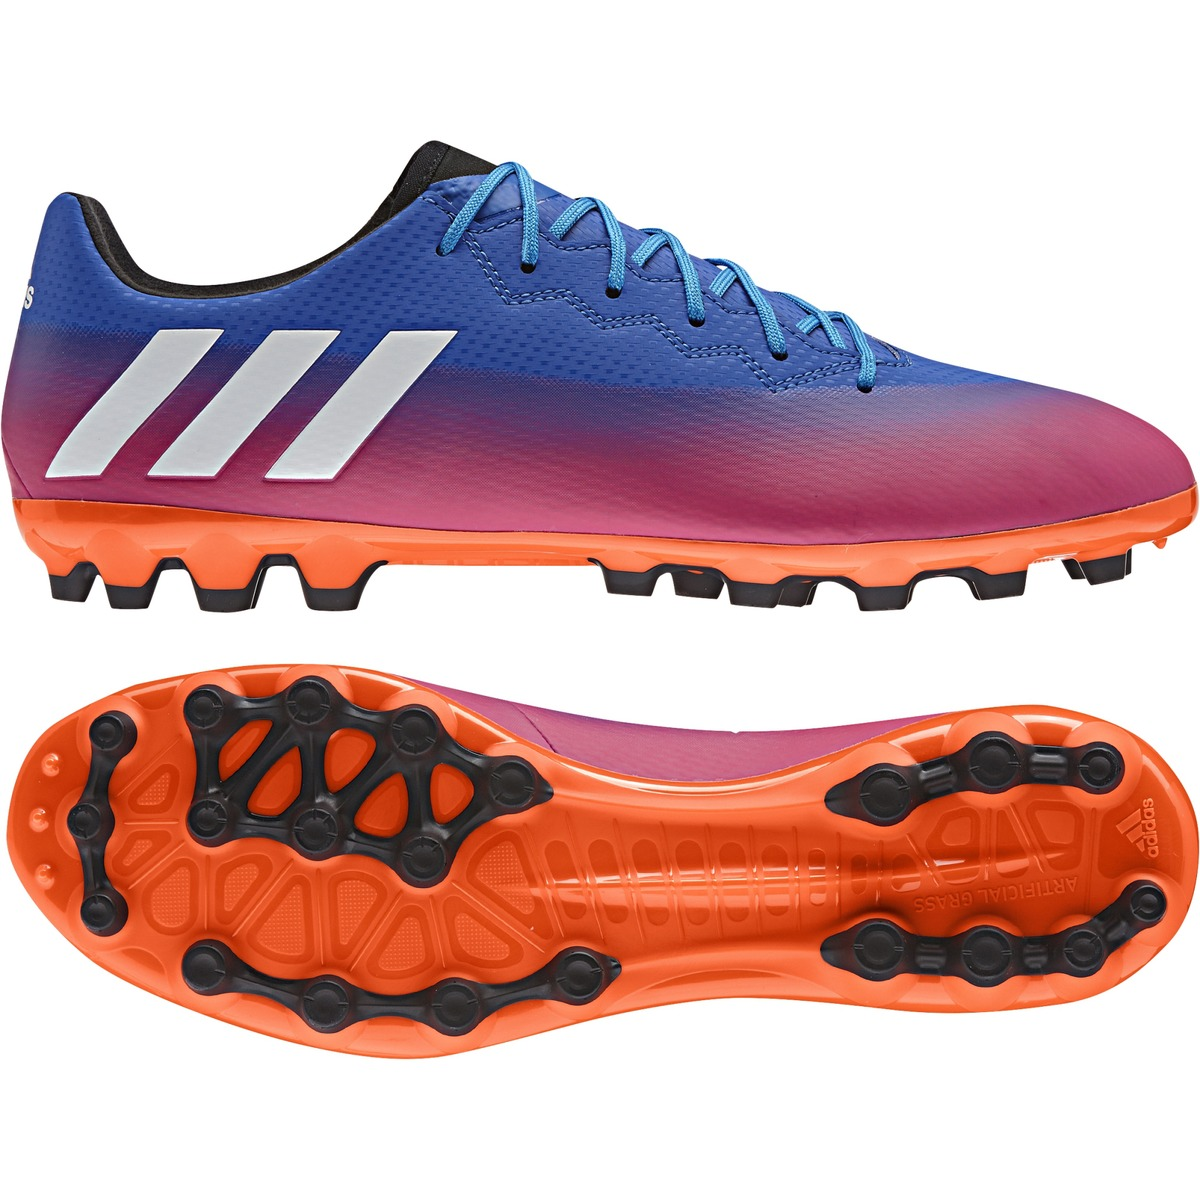 more photos 3c9ae 6027b adidas messi 16.3 ag q1 17 fotbollssko senior fotbollsskor